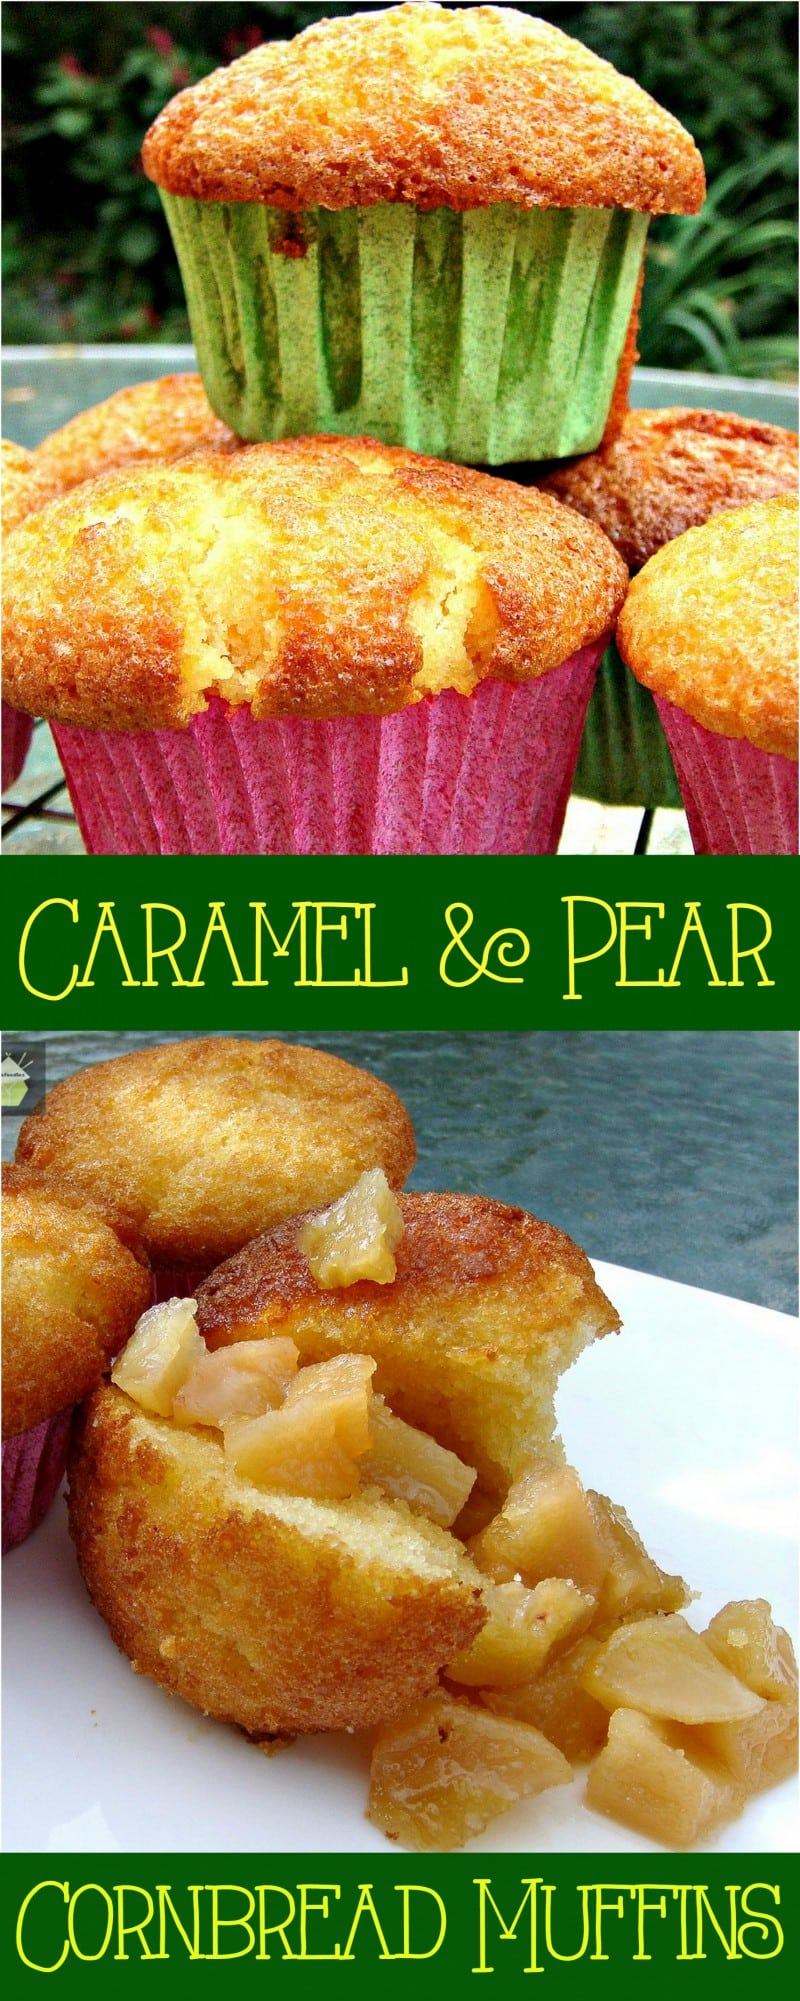 Caramel Pear filled Cornbread Muffins. These are great served warm with ice cream or custard!